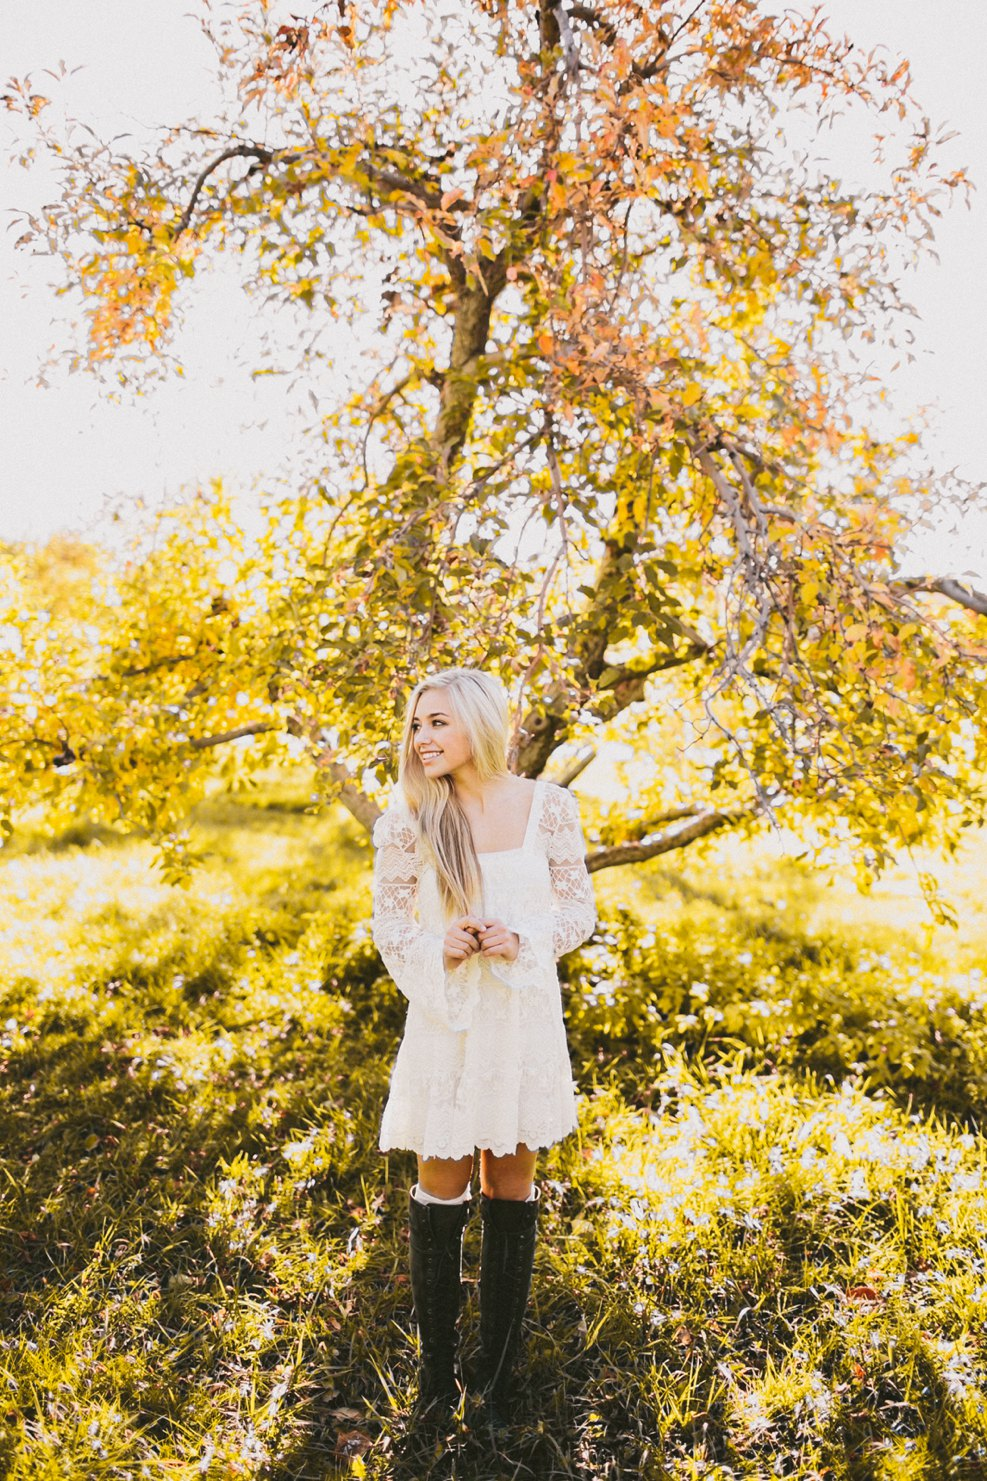 hannah wyn wiley photography_679